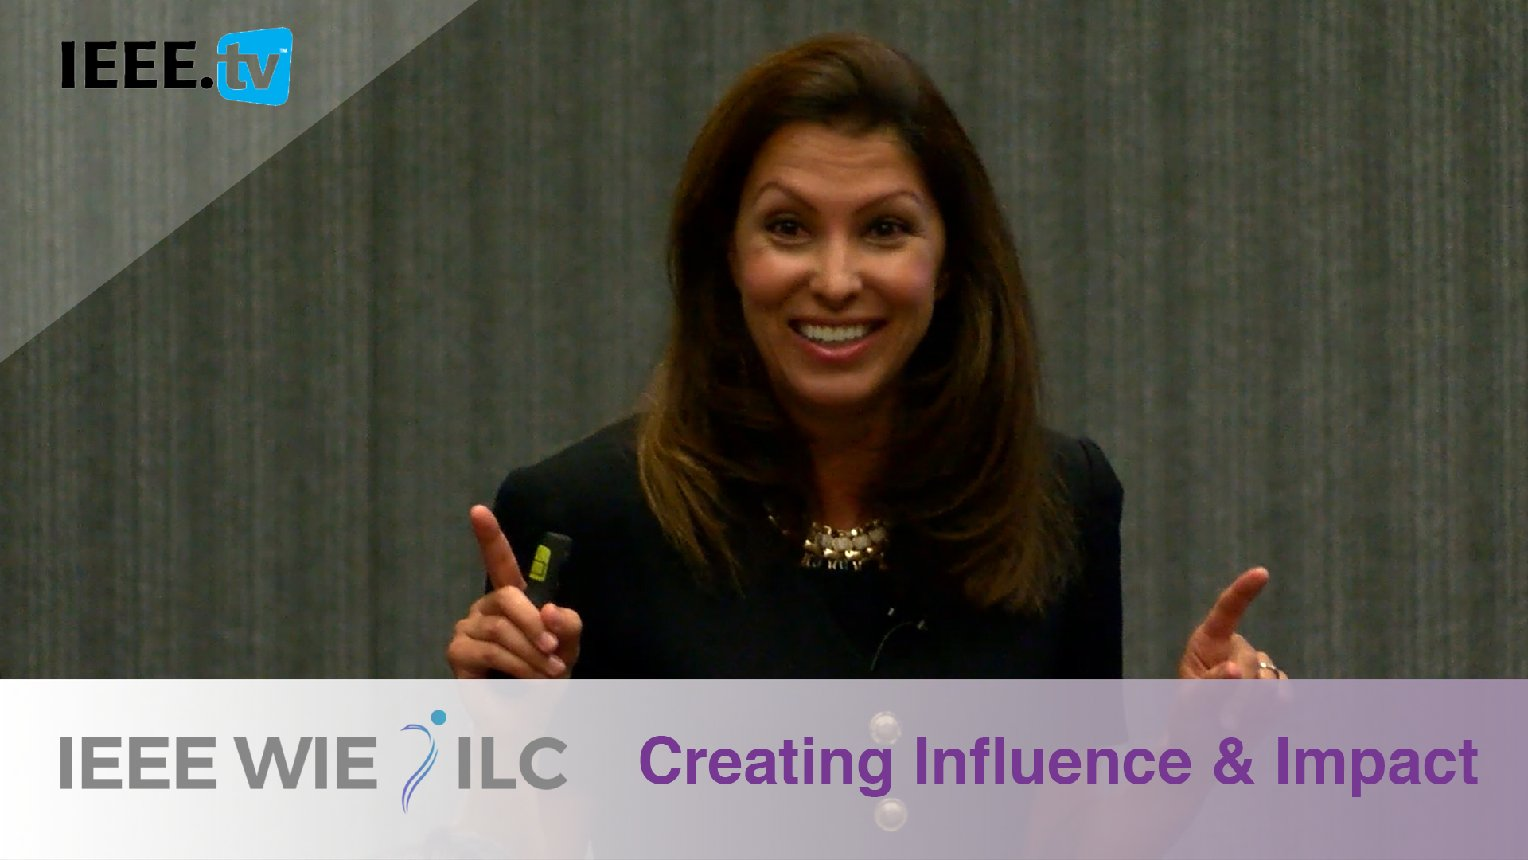 Creating Influence and Impact with JJ DiGeronimo - IEEE WIE ILC 2017